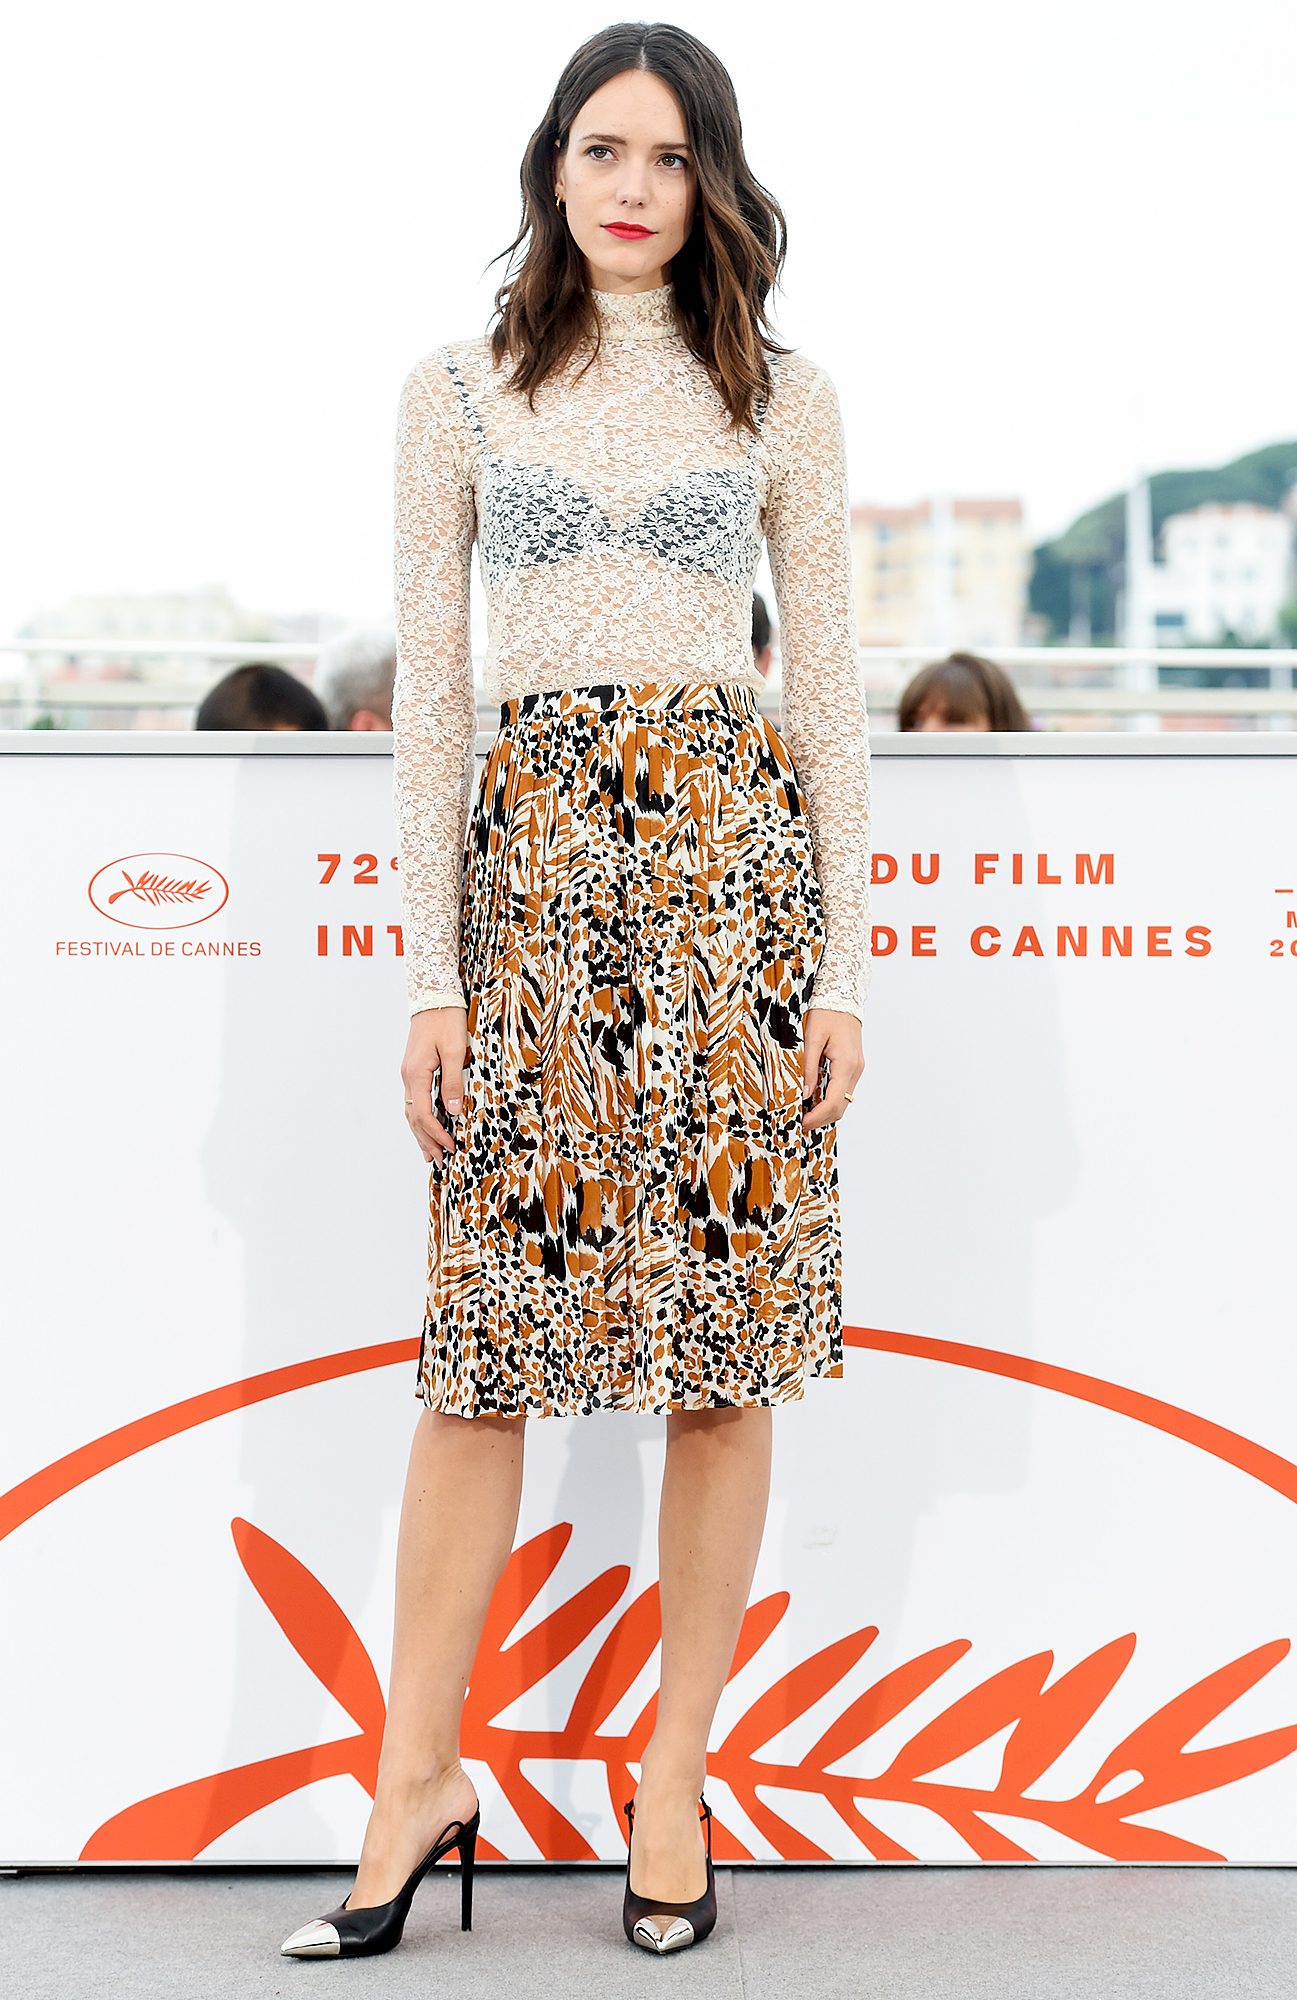 Stacy-Martin - A sheer top looked cool with the actress' pleated skirt at the Jury De La Cinefondation Et Des Courts Metrages photo-call on Friday, May 24.